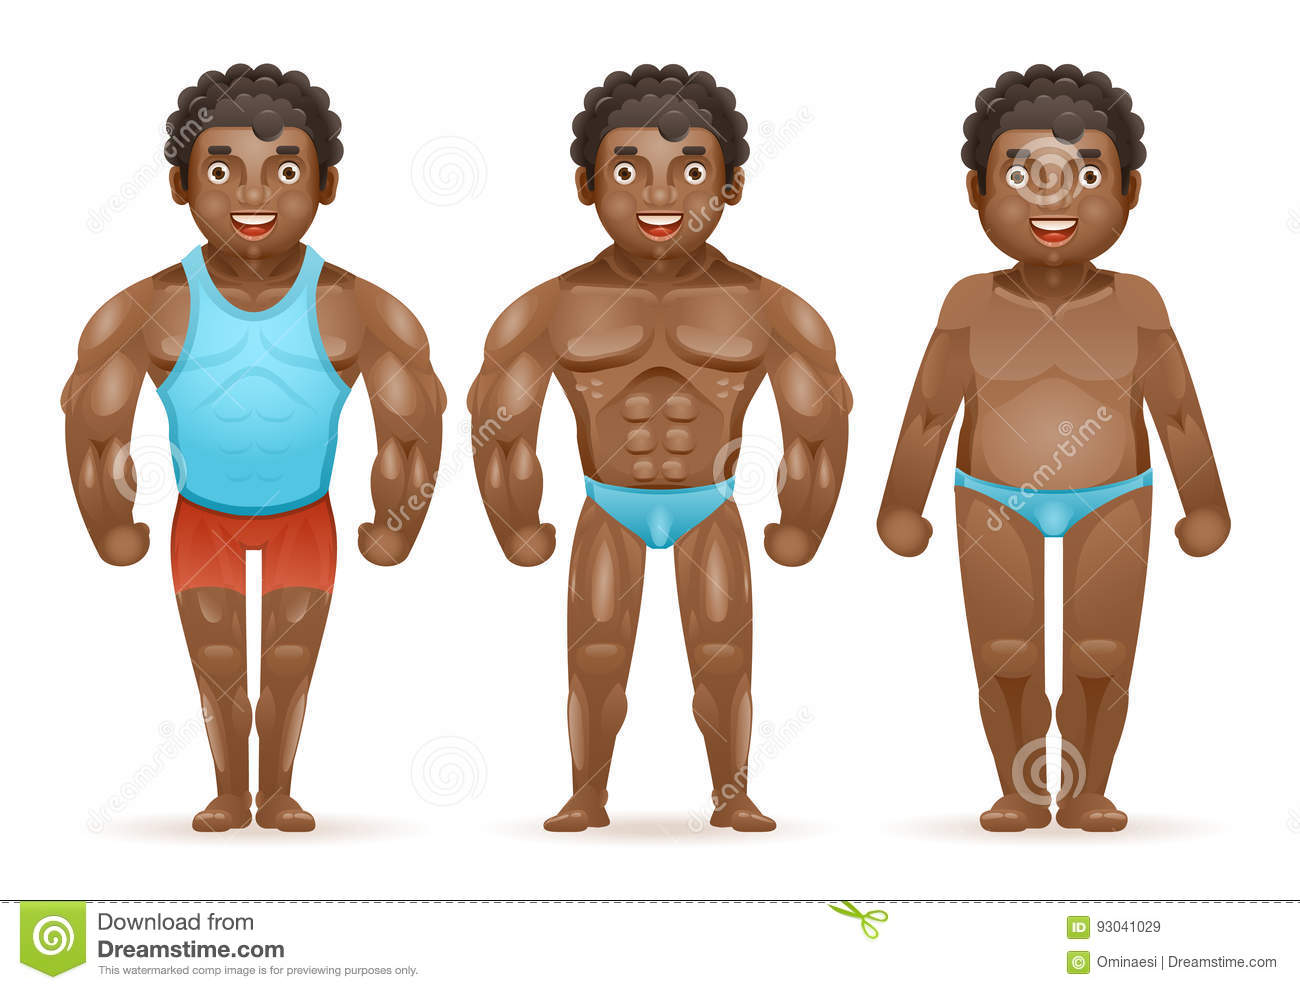 Weight loss afroamerican bodybuilder muscular fat man before after sports happy characters isolated 3d cartoon design